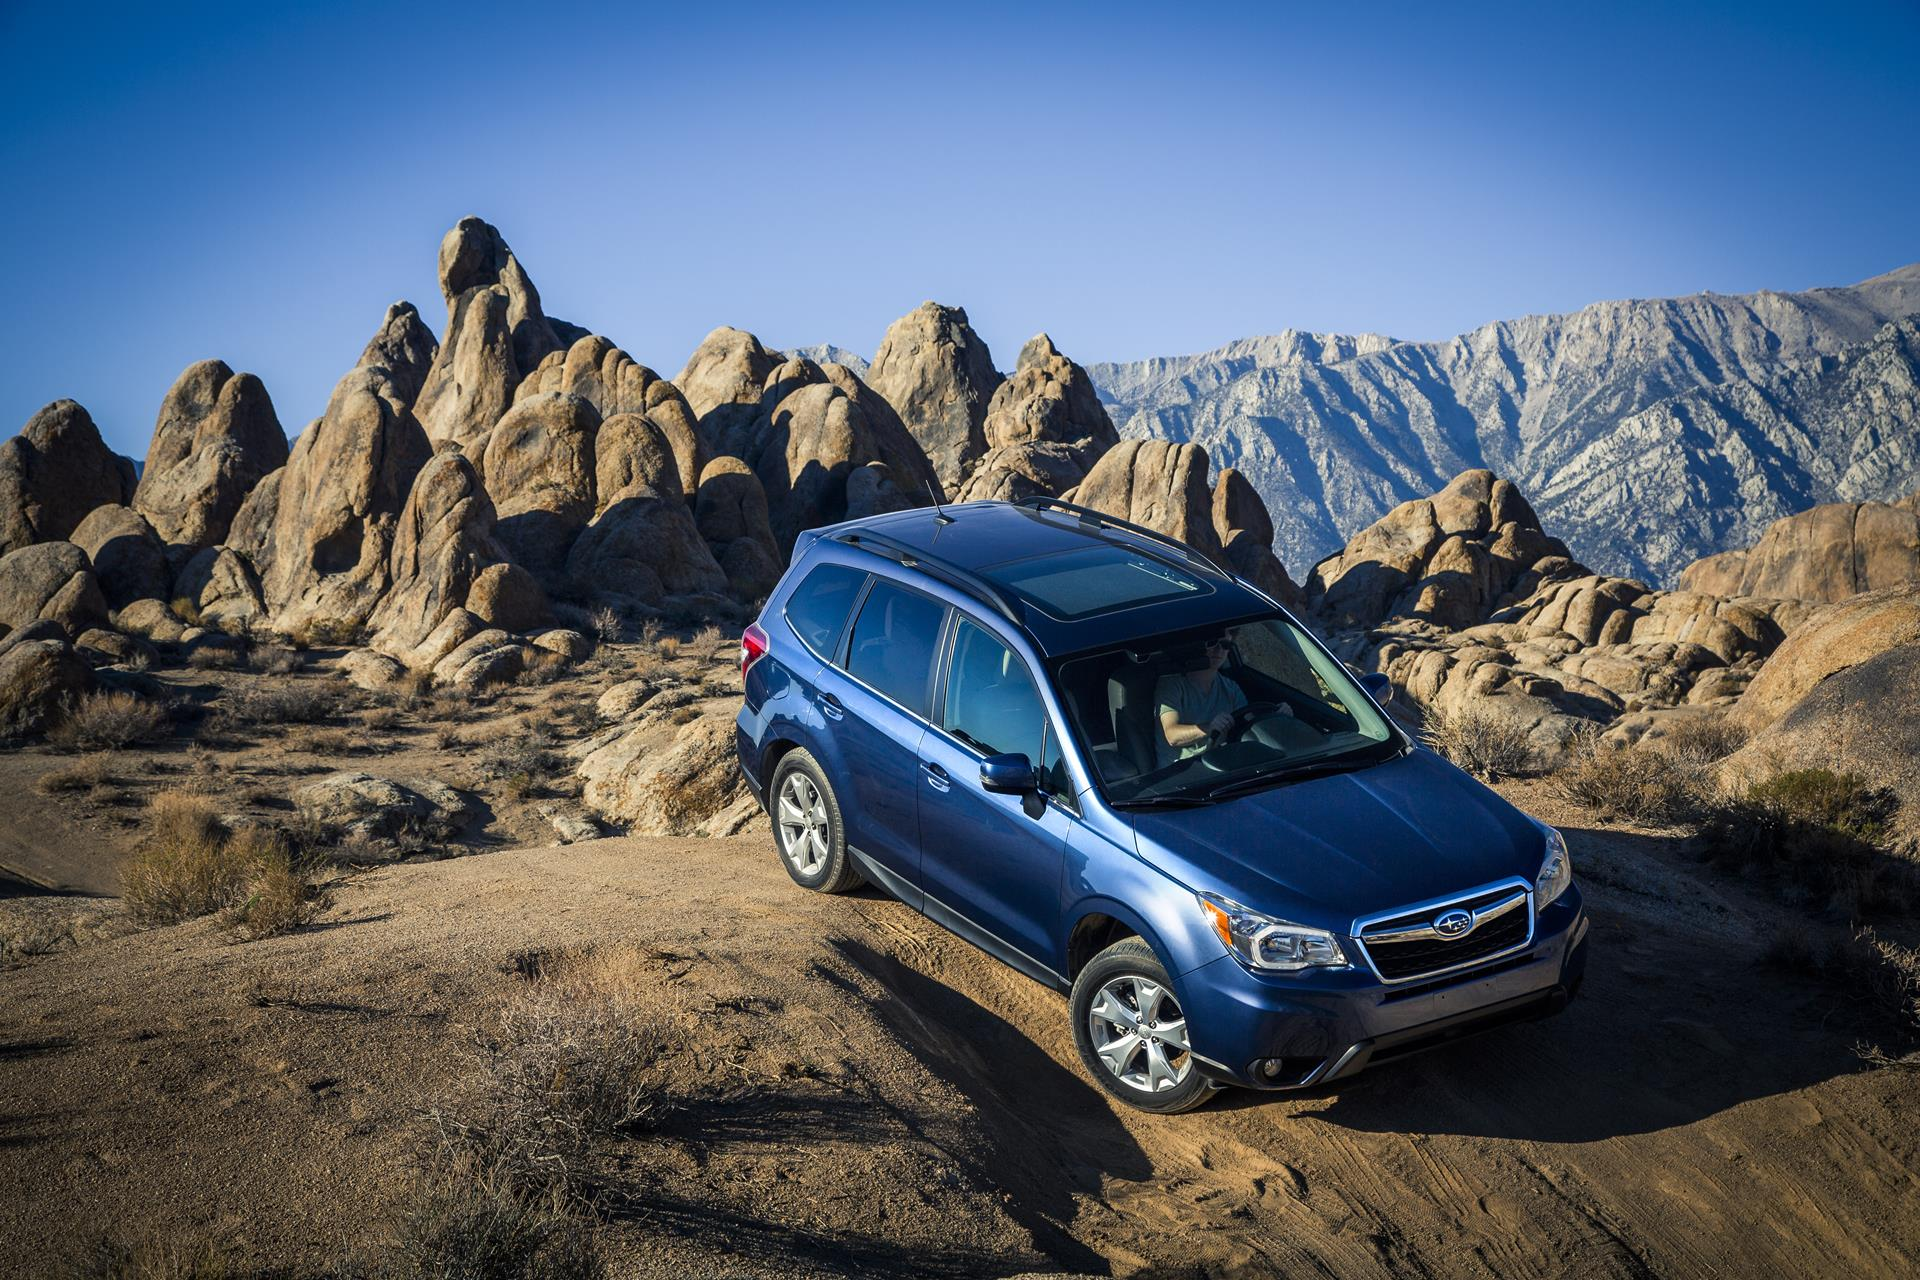 Vintage Muscle Car Wallpaper 2015 Subaru Forester News And Information Conceptcarz Com